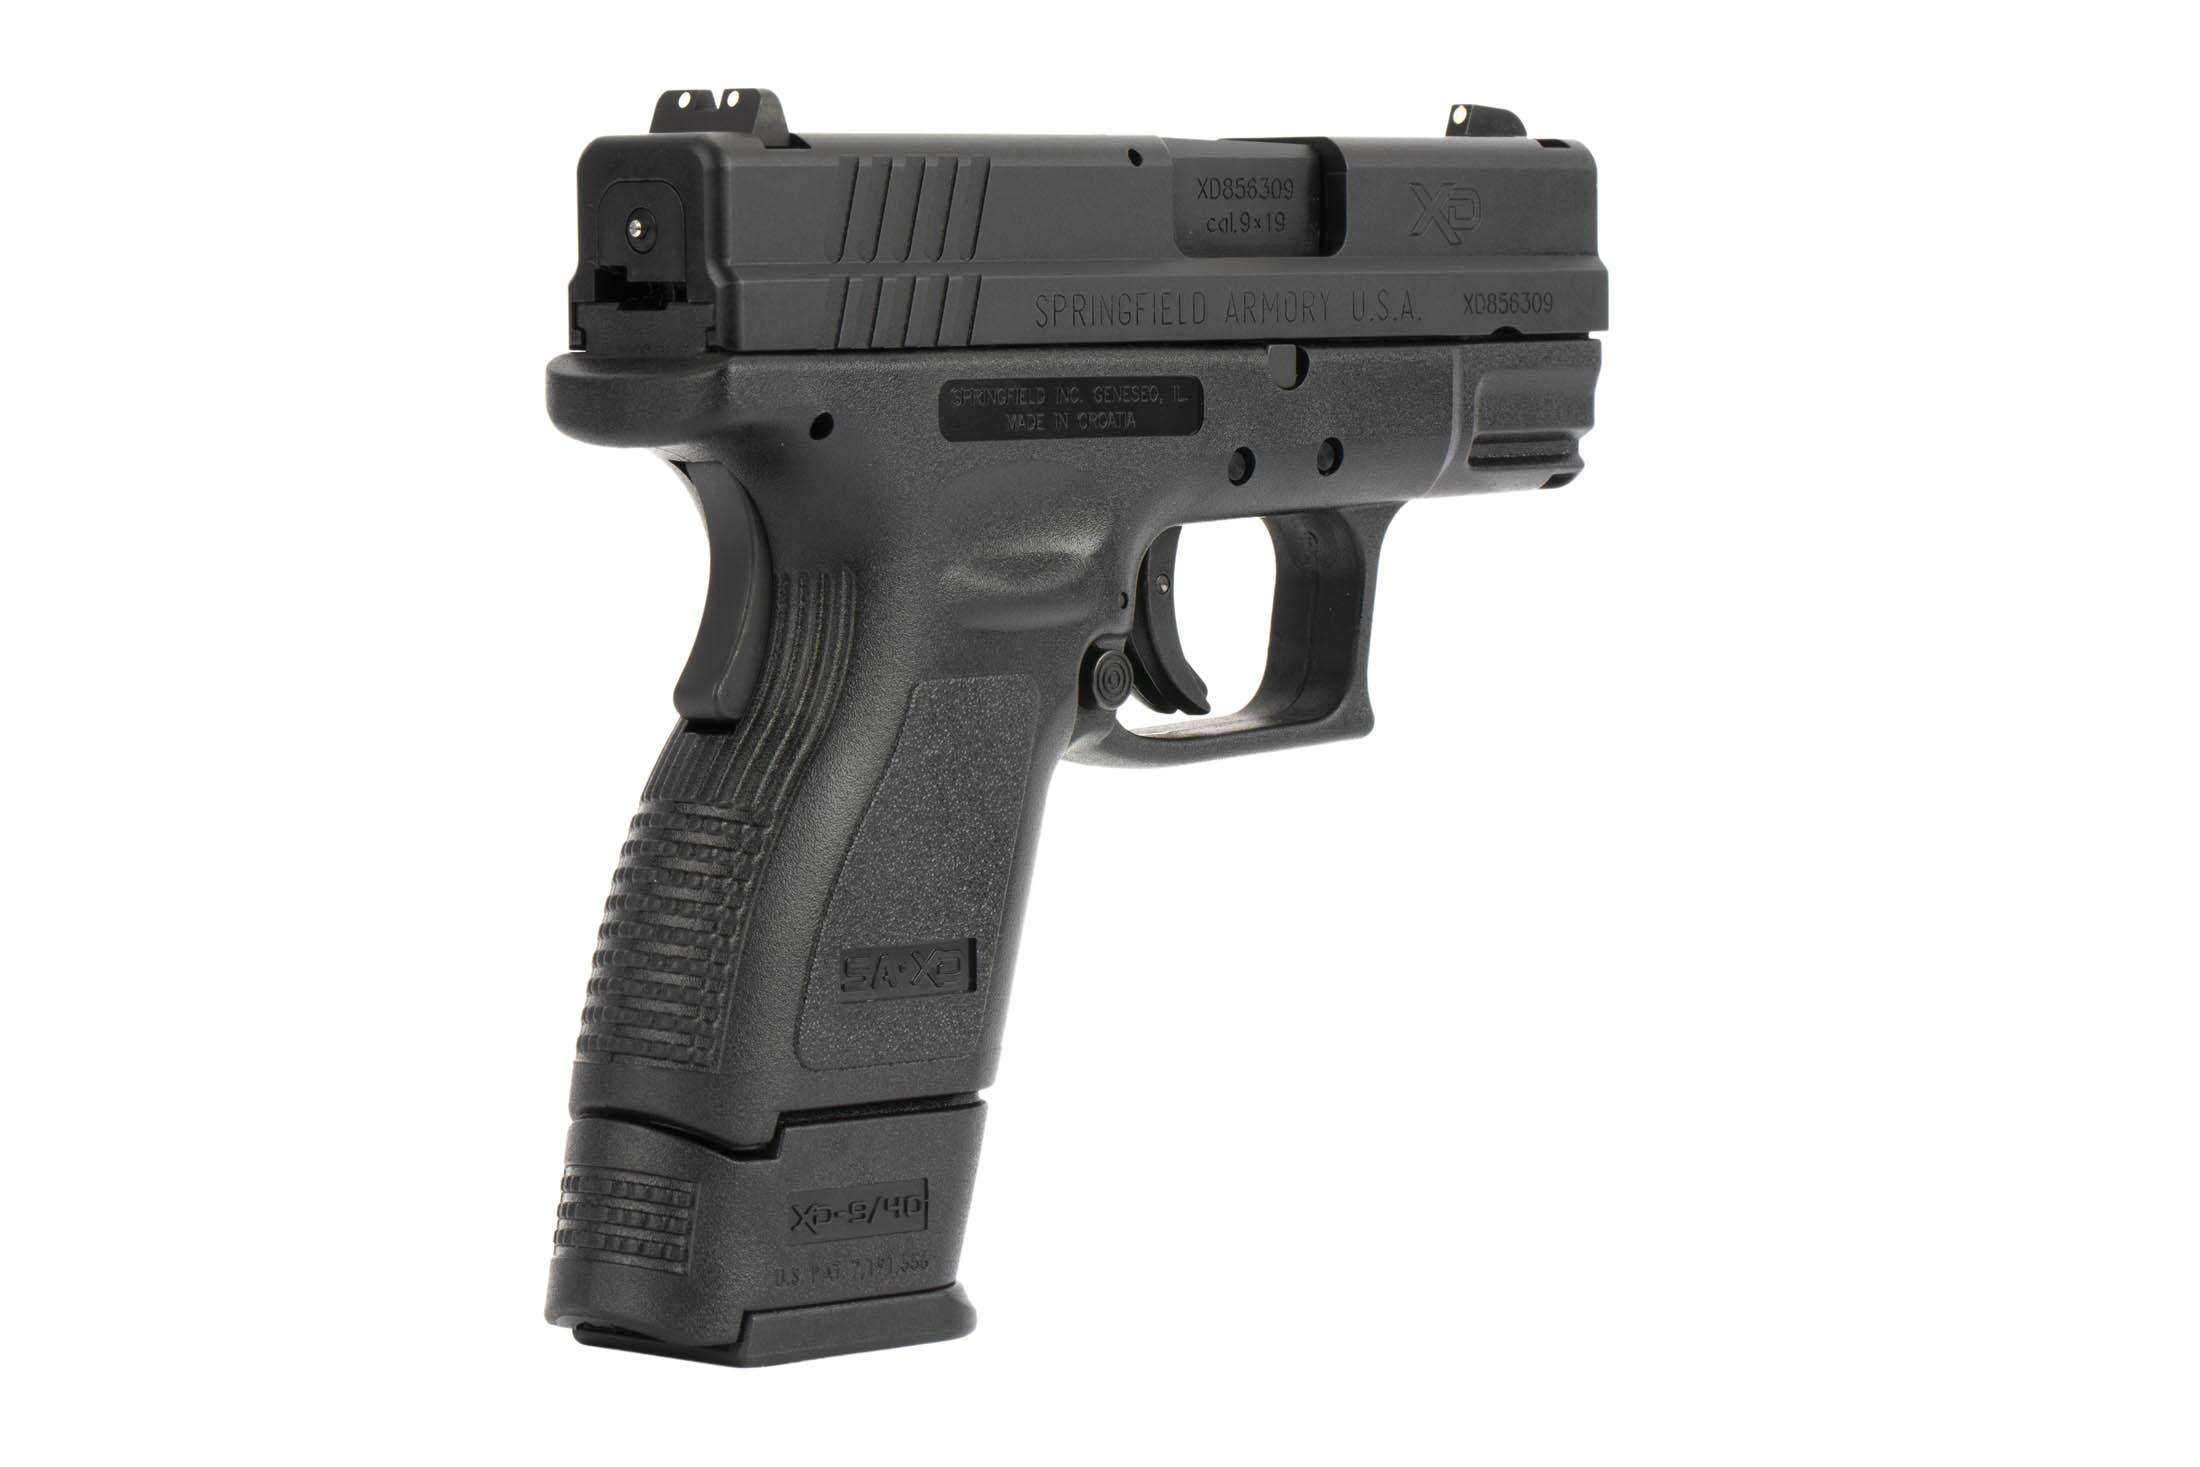 The Springfield Armory XD9 is a 9mm Sub Compact 16 round Handgun with a striker fired mechanism